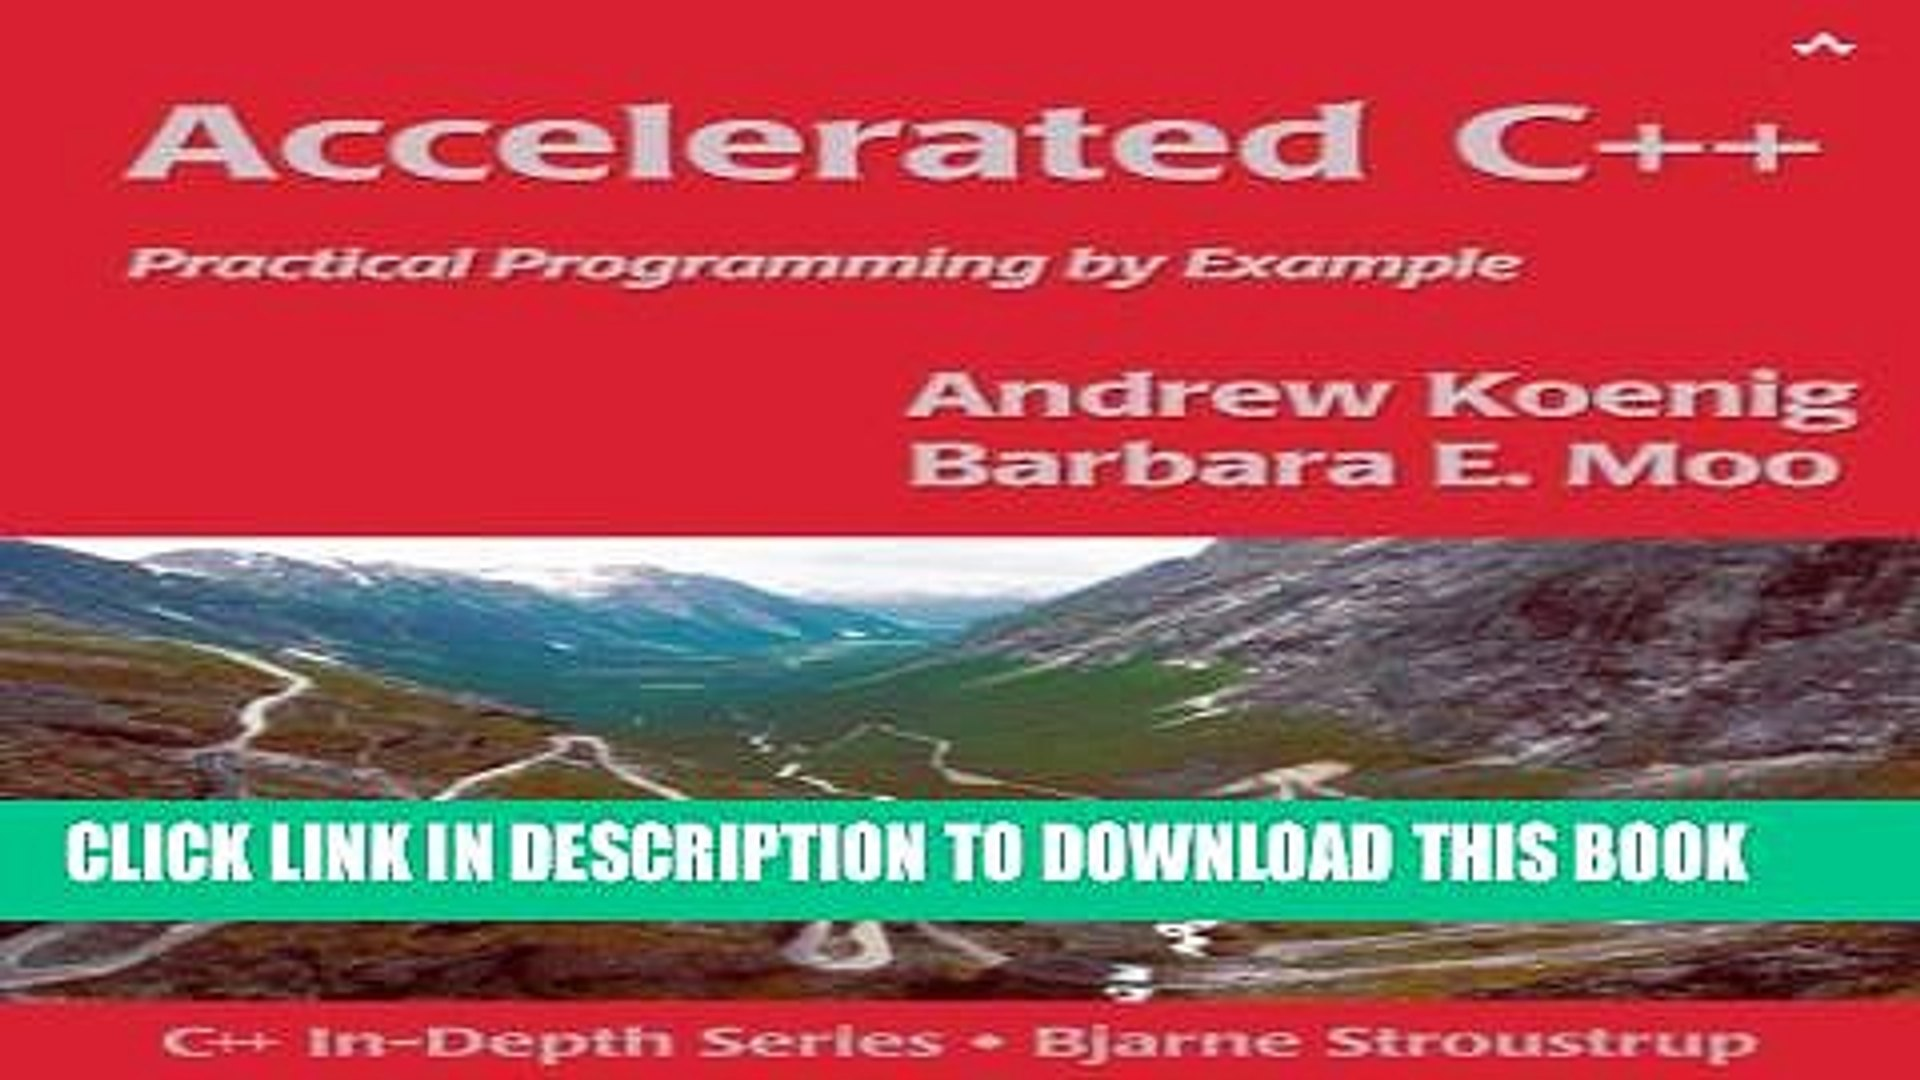 Accelerated c++ practical programming by example pdf free